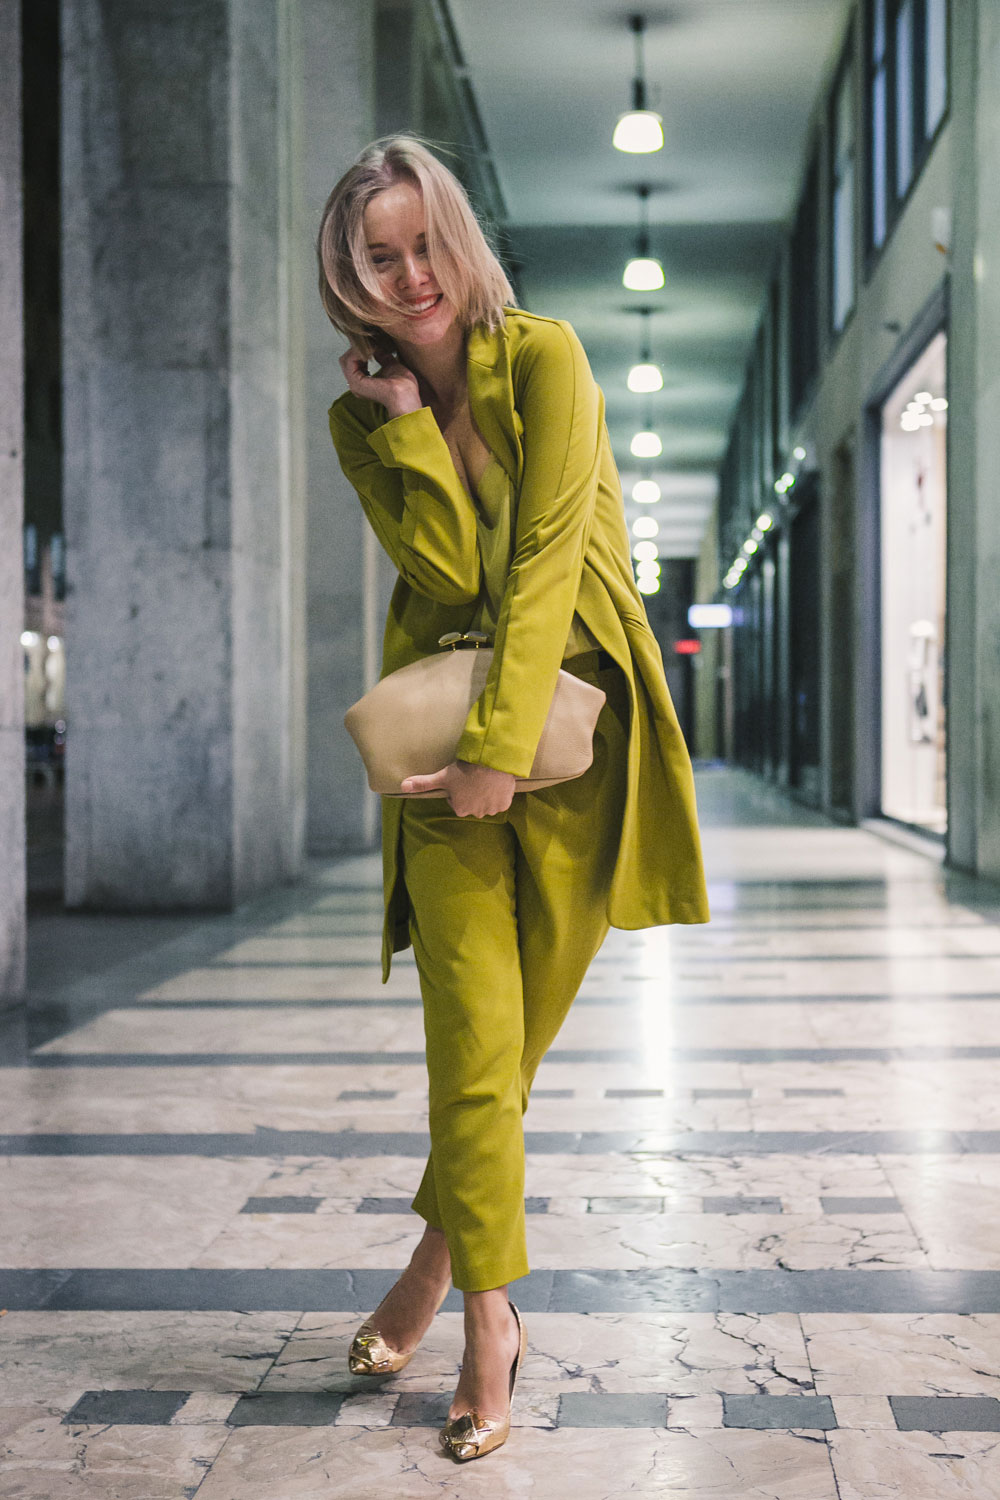 darya-kamalova-fashion-lifestyle-blogger-from-thecablook-on-san-pietro-all-orto-opening-party-in-milan-wears-asos-suit-marni-clutch-burberry-prosum-wedges-6890